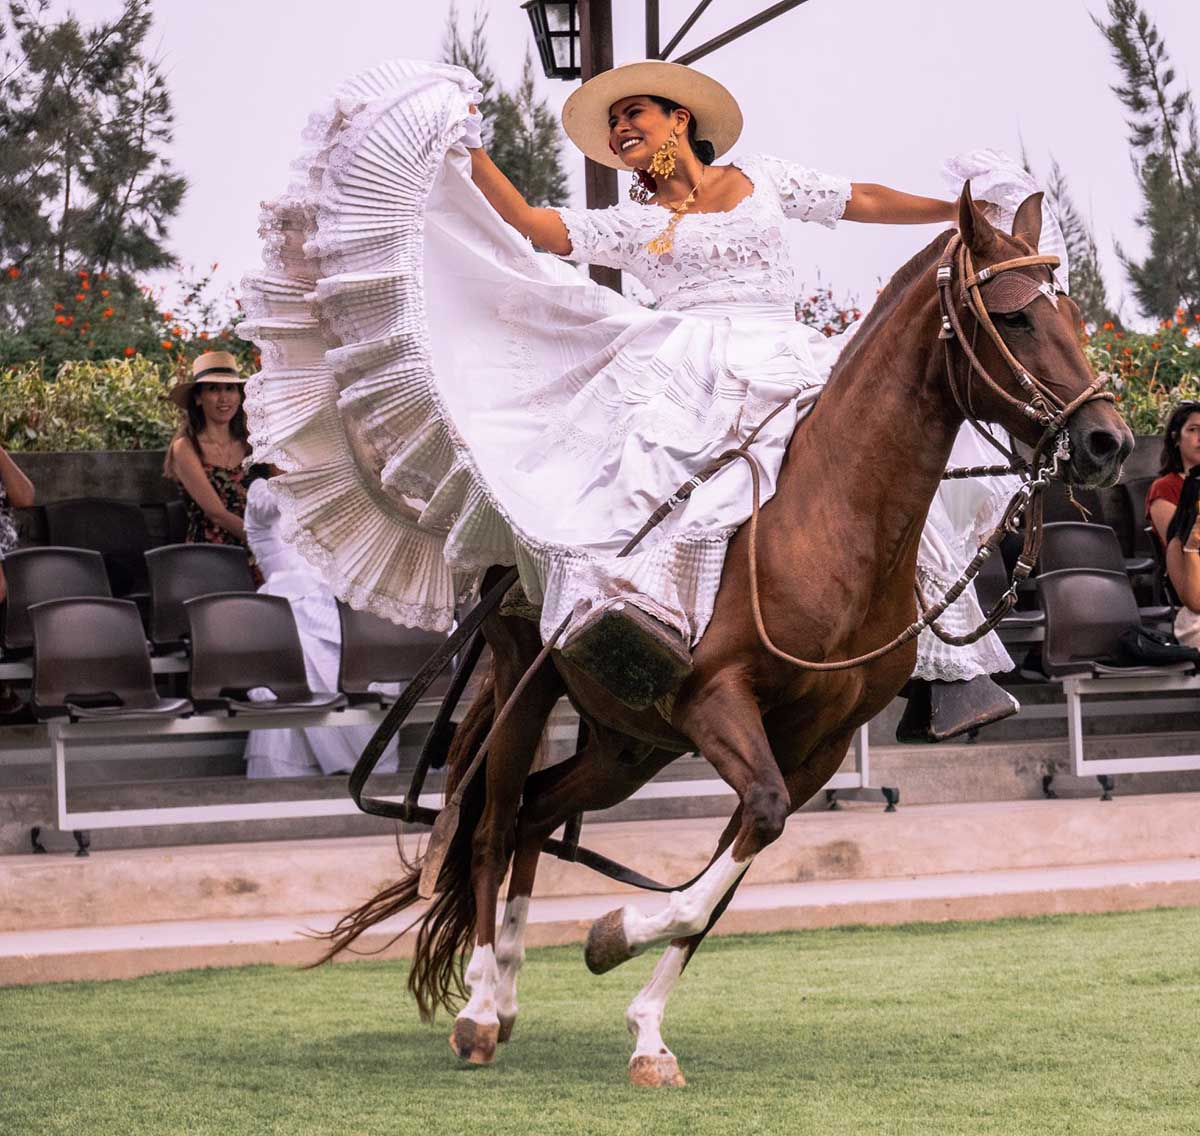 Woman in a white Spanish dress gracefully poses on a running horse at the Dpaso show in Lima.